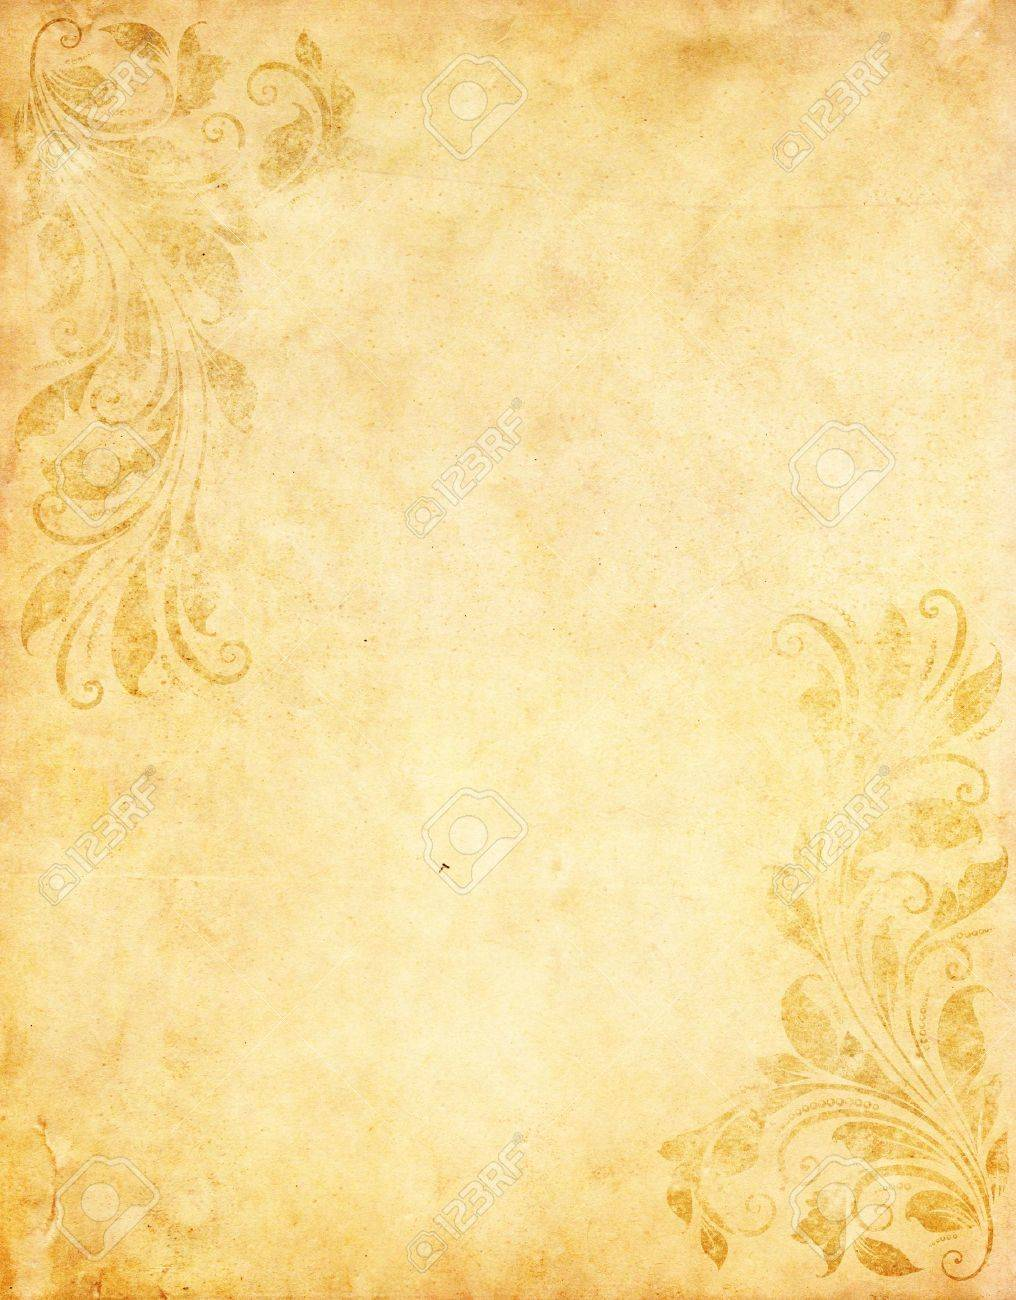 Old Grunge Paper Background With Vintage Victorian Style Stock ...